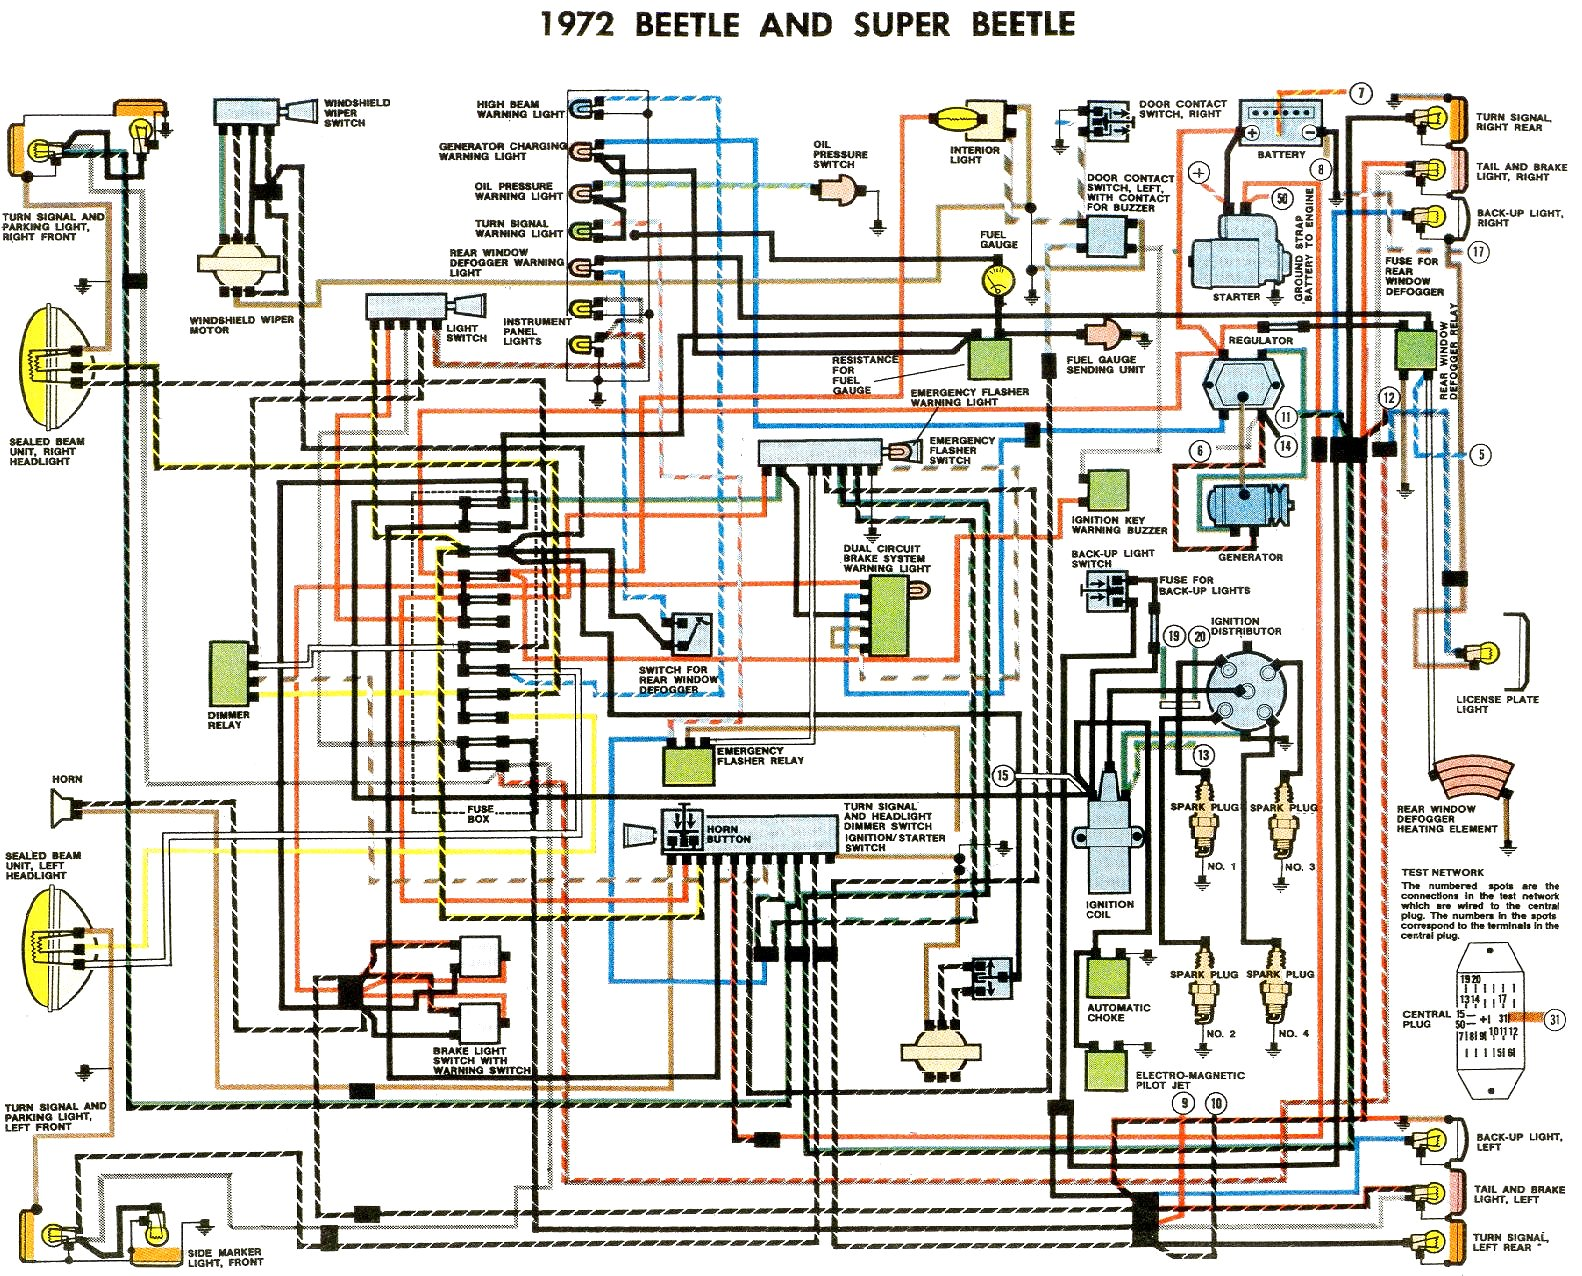 1974 Vw Buggy Wiring Basic Schematic Dune Diagrams 11x17 Color Diagram 1971 Super Beetle Bug Library Lights